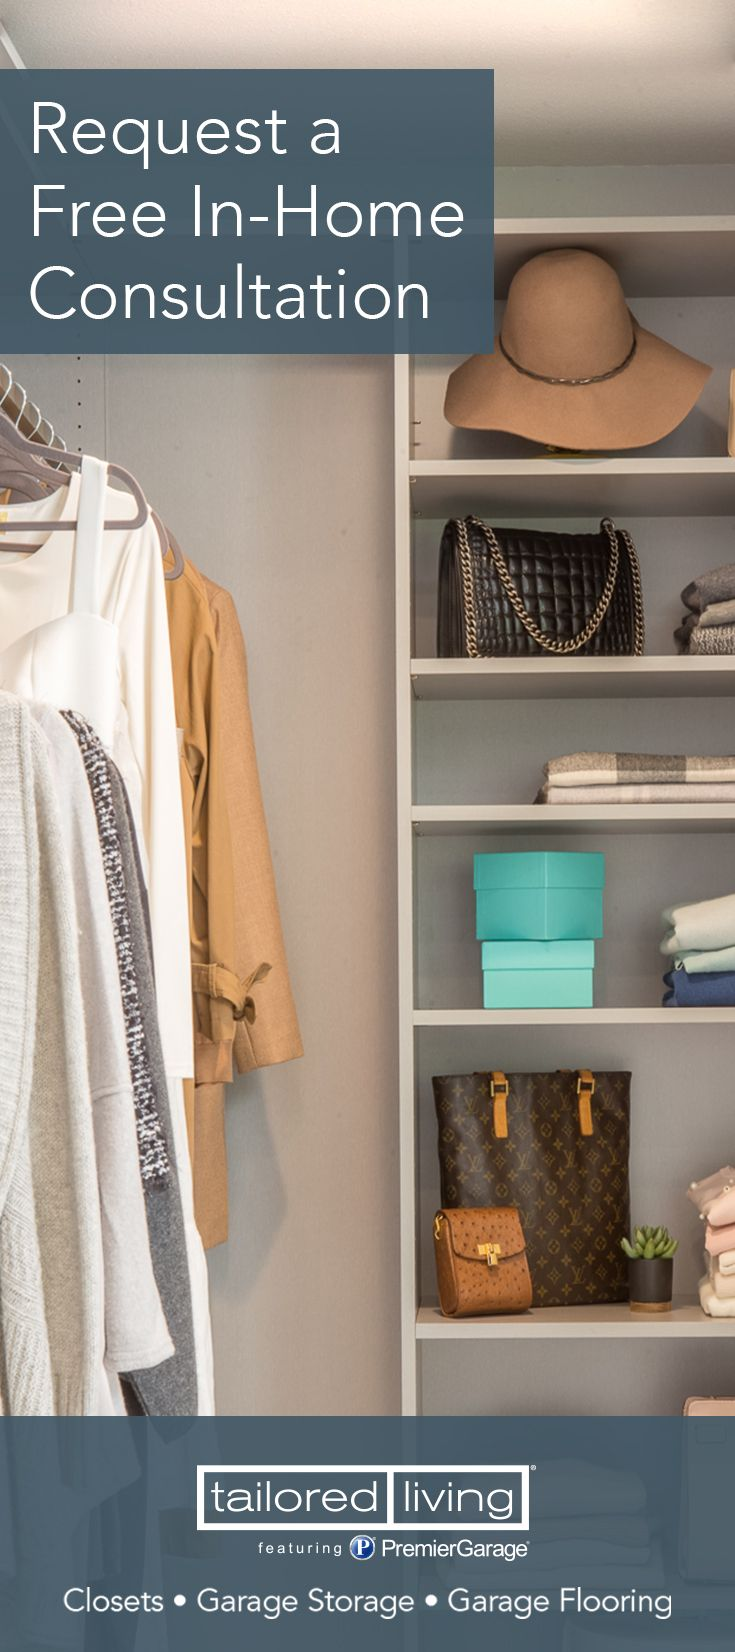 Affordable U0026 Stylish Custom Closets. Request A Free In Home Consultation  Today And Ask About Our Special Savings.